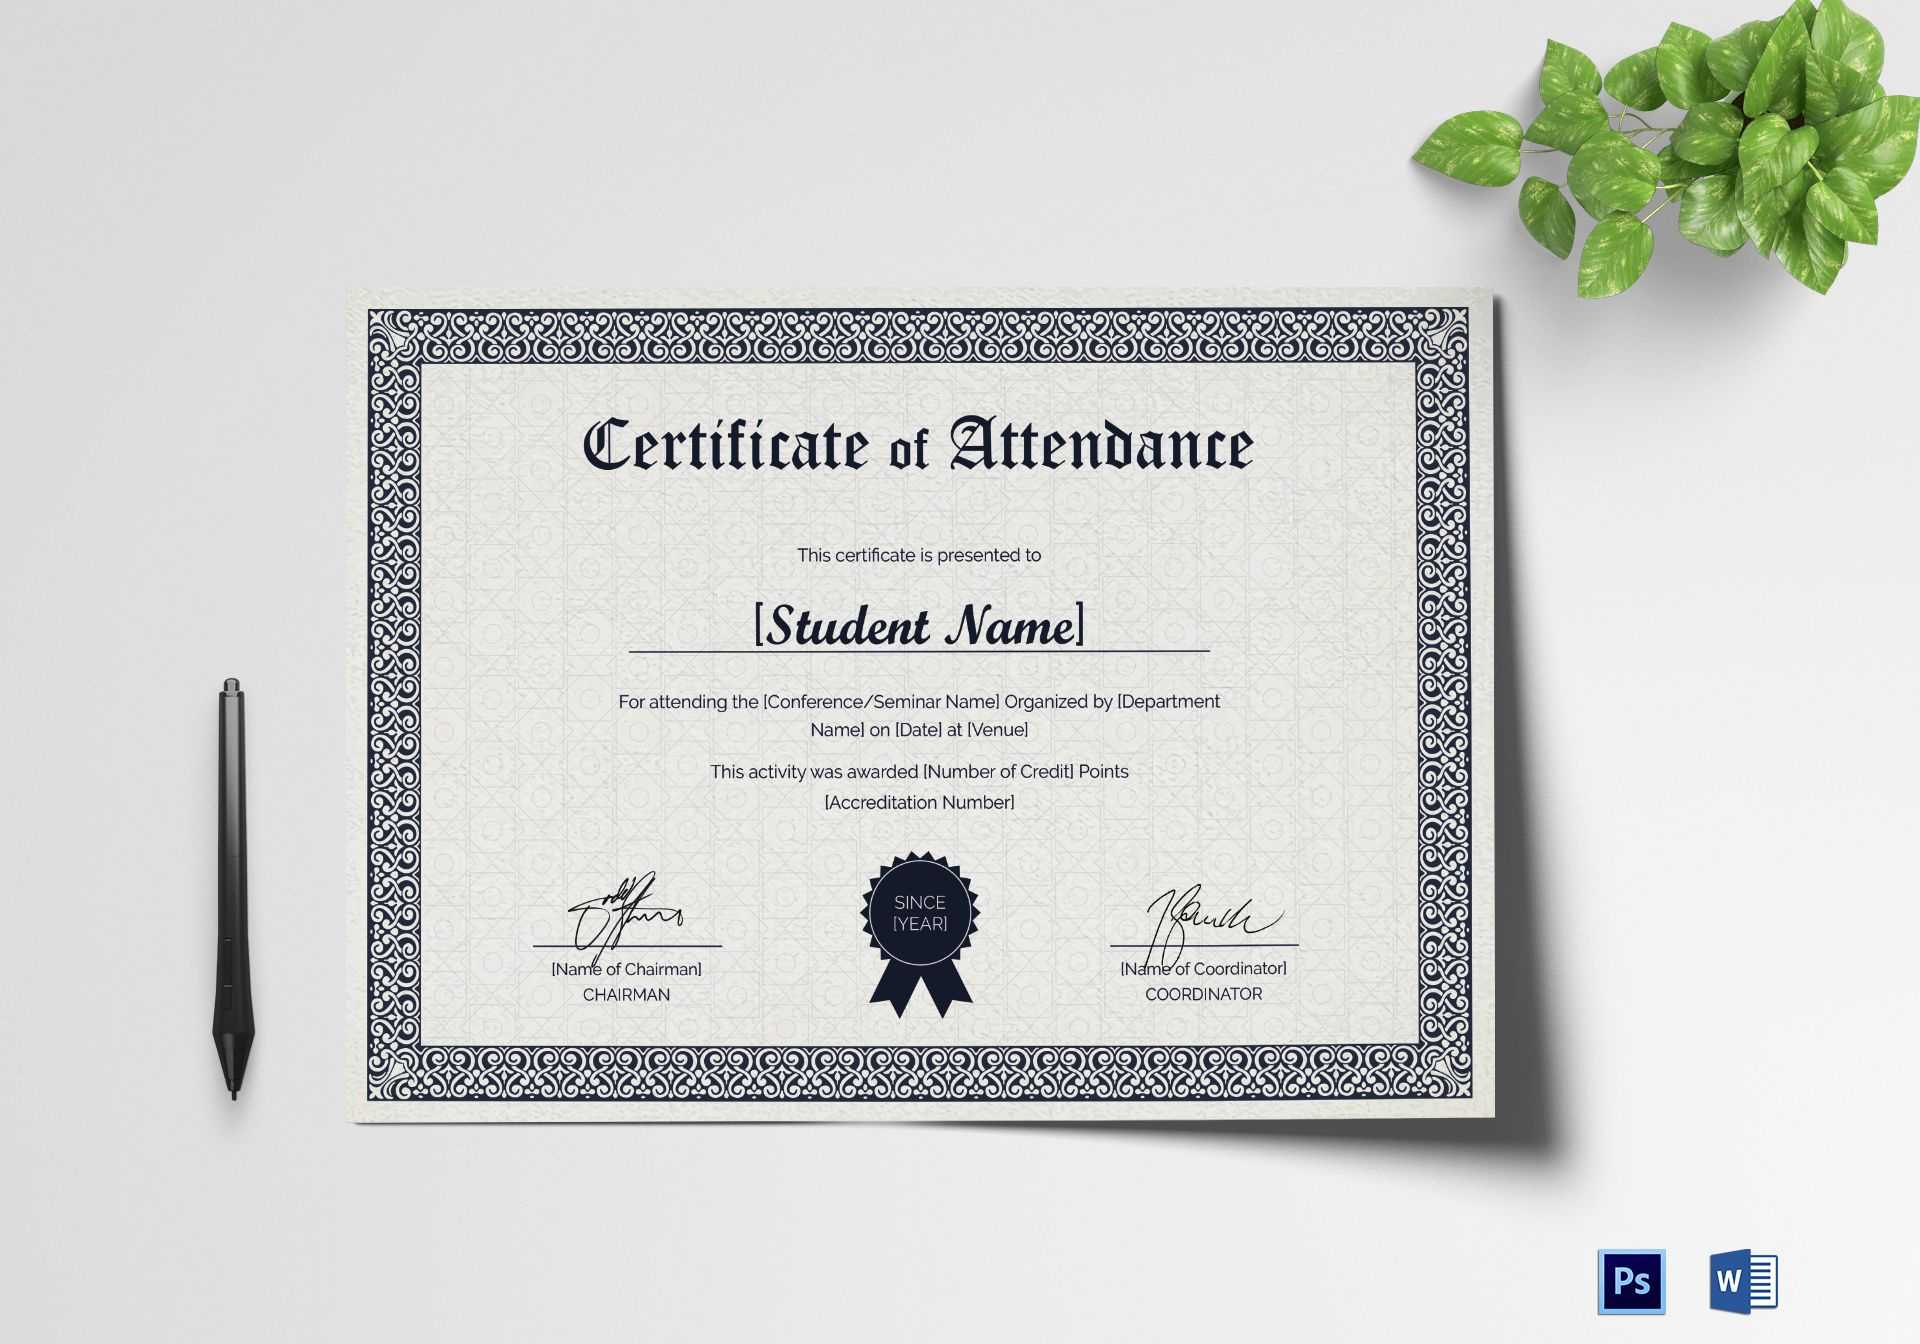 Students Attendance Certificate Template regarding Certificate Of Attendance Conference Template